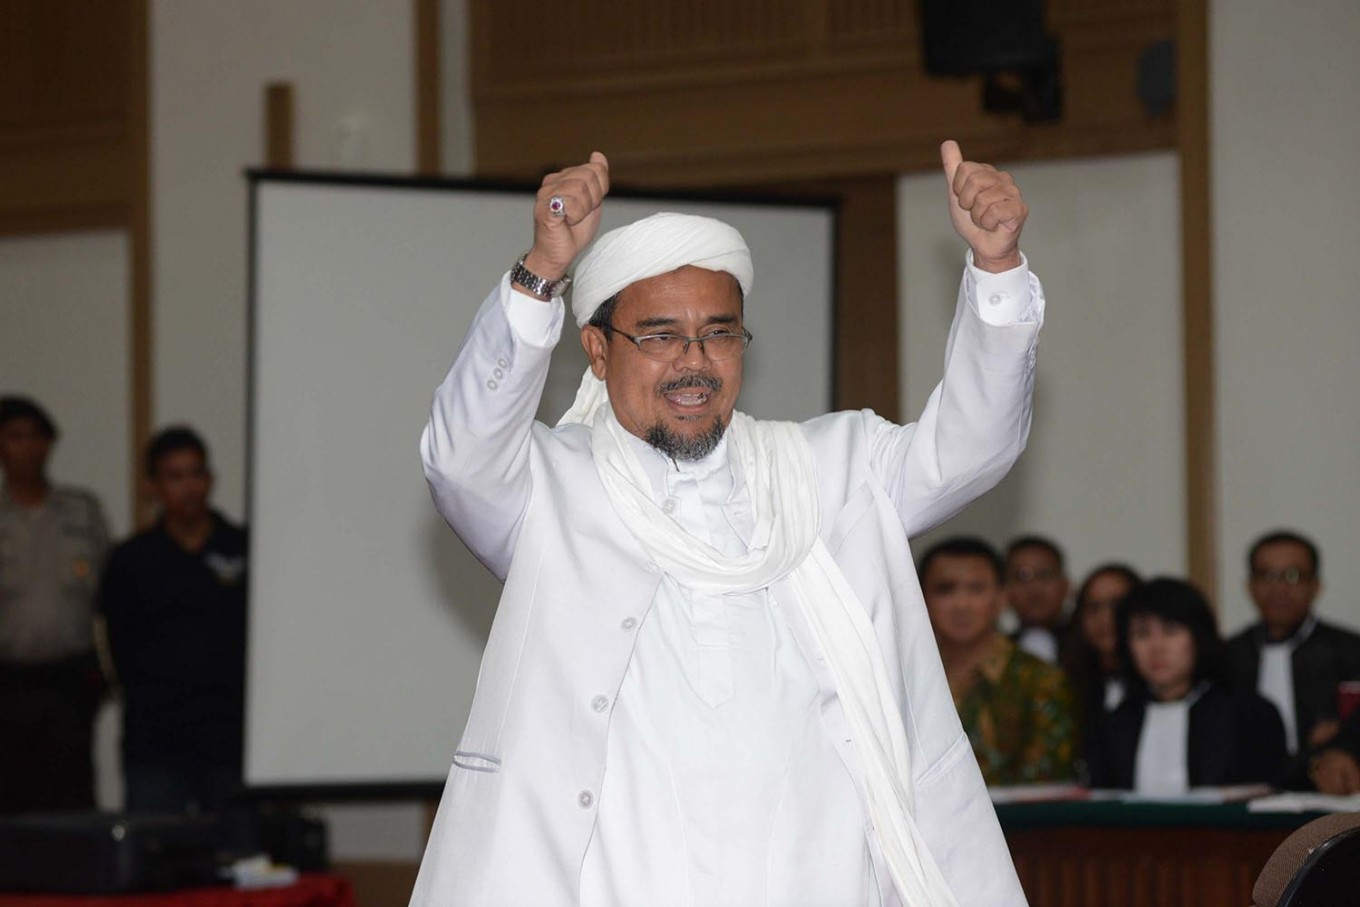 Rizieq Shihab to return to Indonesia on Nov. 10, denies overstaying in Saudi Arabia